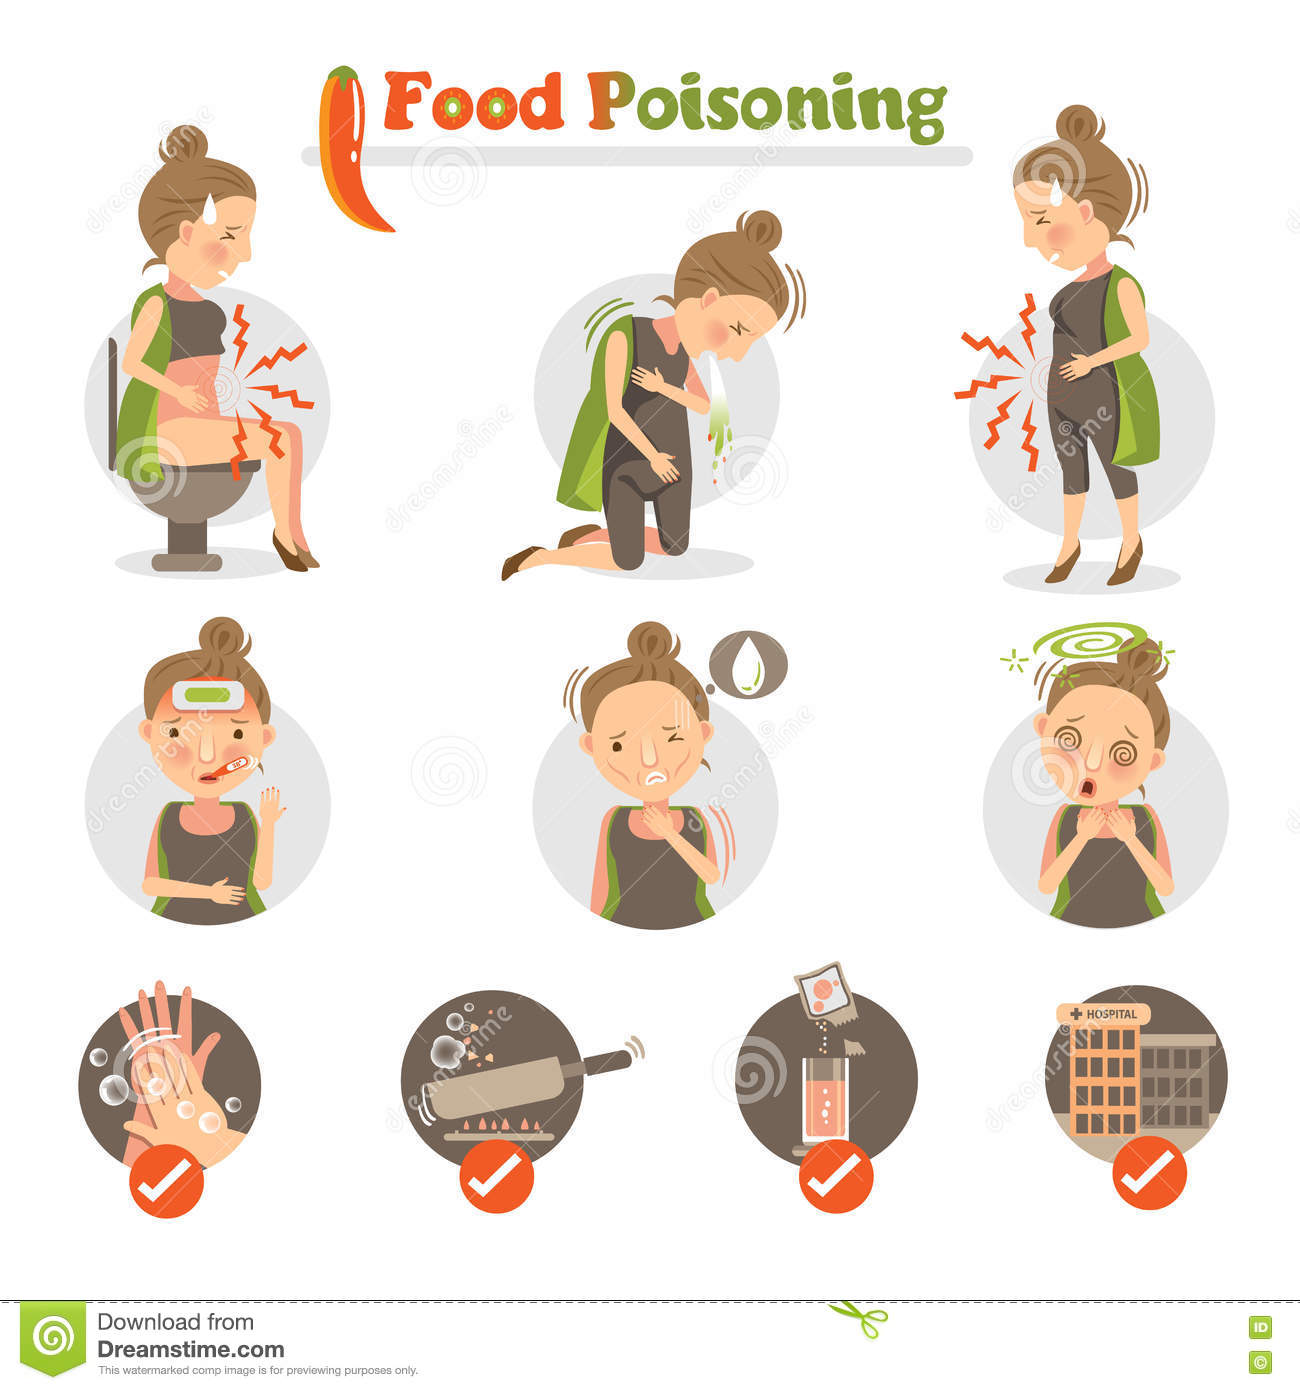 food poisoning Food poisoning bulletin 16,859 likes 19 talking about this food poisoning bulletin is sponsored by pritzkerhagerman, pa, a national food safety law.